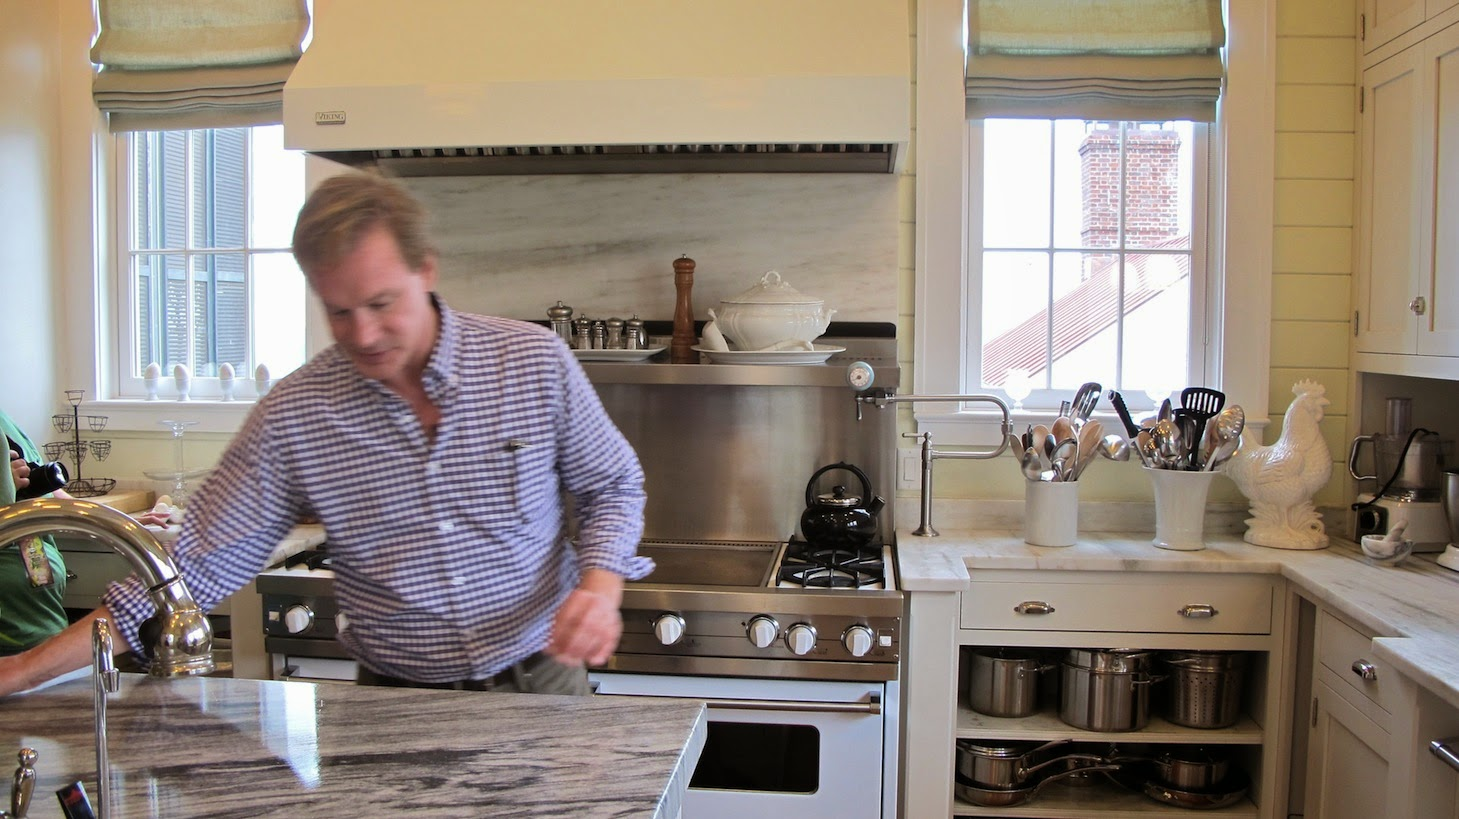 P Allen Smith Moss Mountain Garden Home kitchen shot touching marble (c)nwafoodie